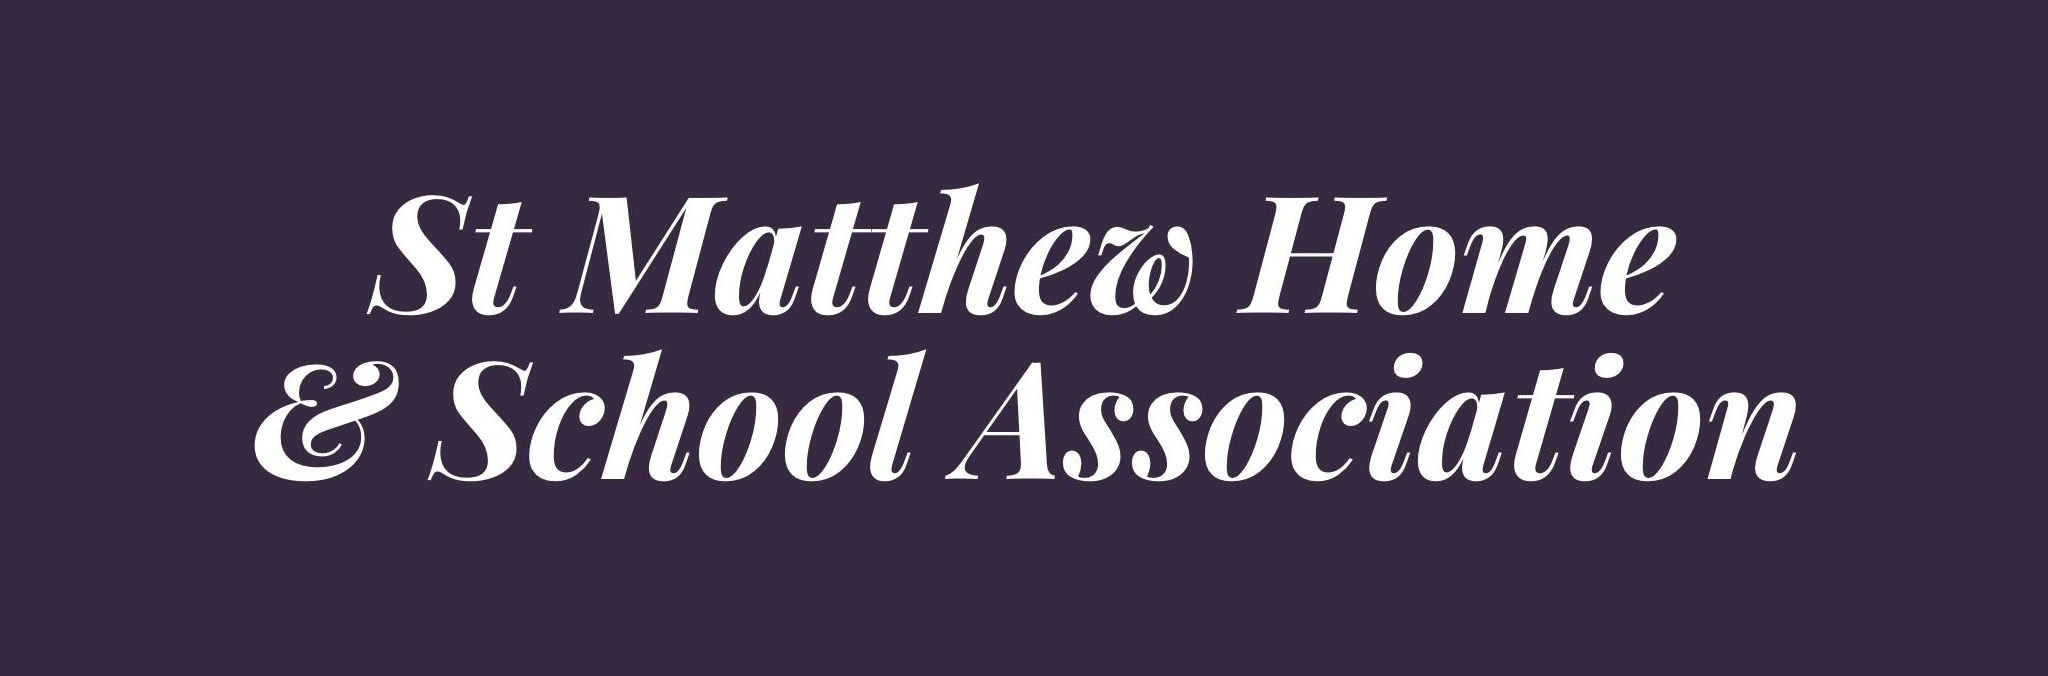 ST MATTHEW HOME AND SCHOOL ASSOCIATION